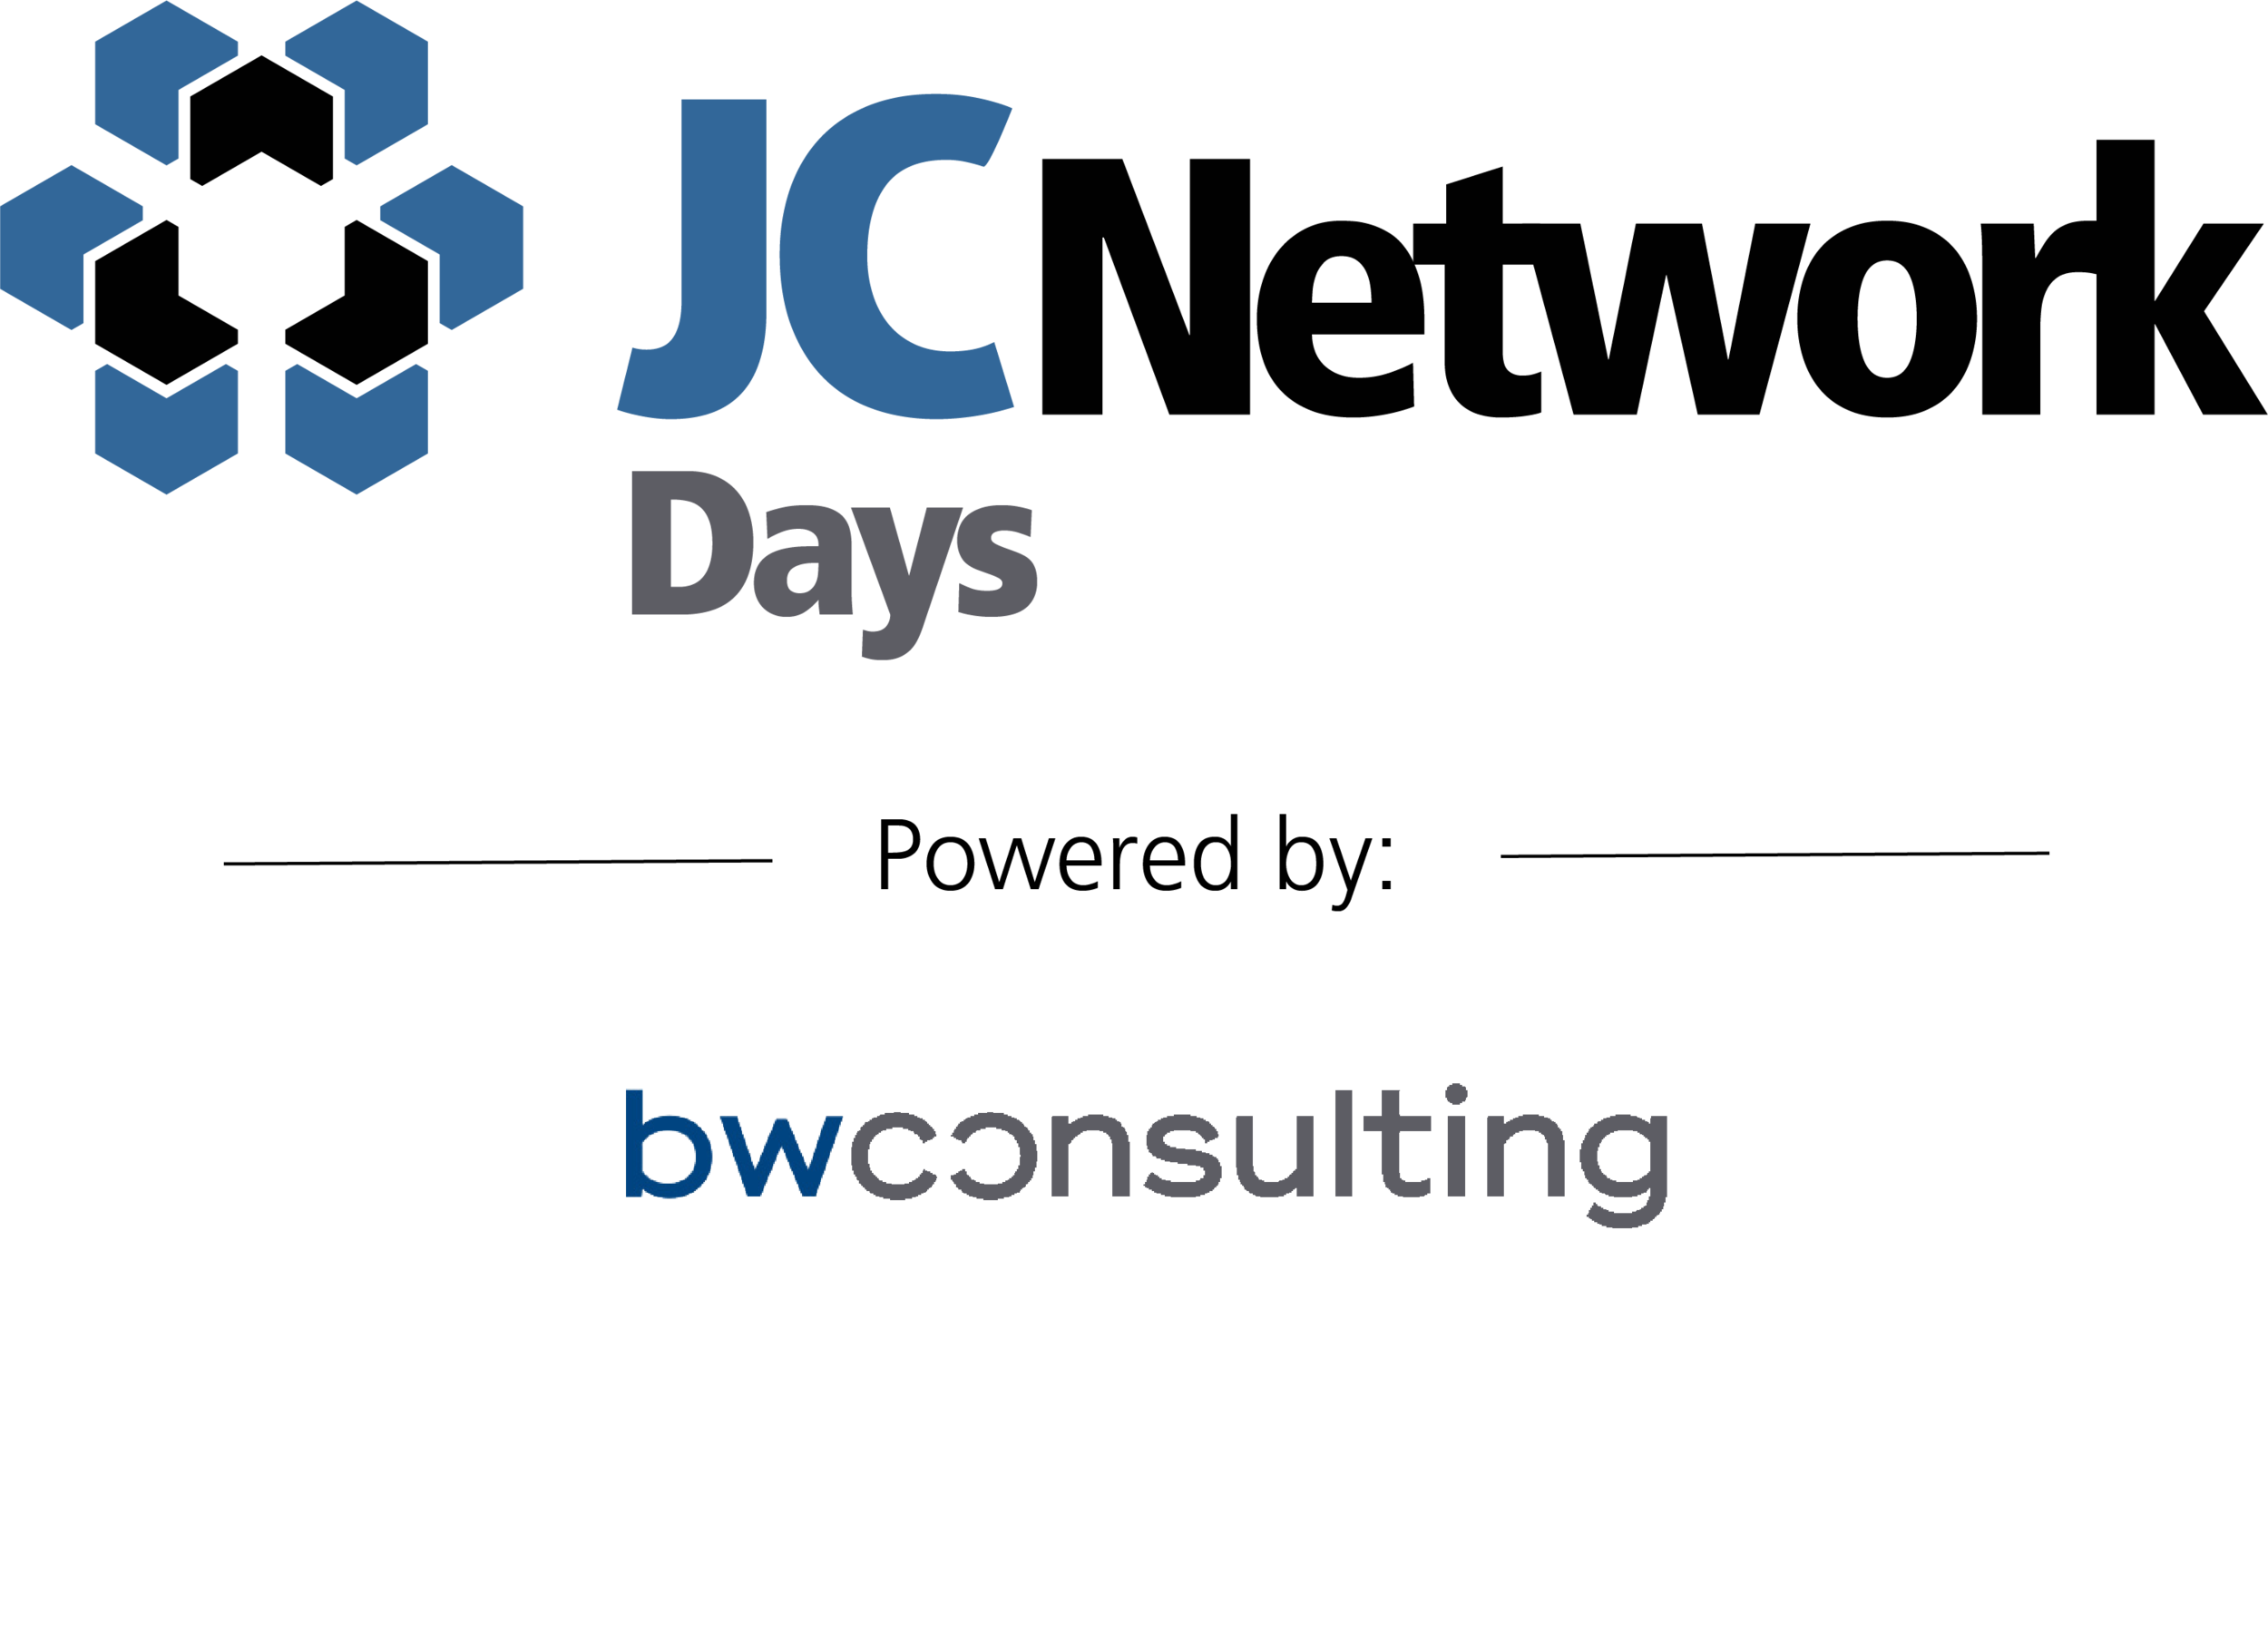 JCNetworkDays-PowerdBy_dunkel.png